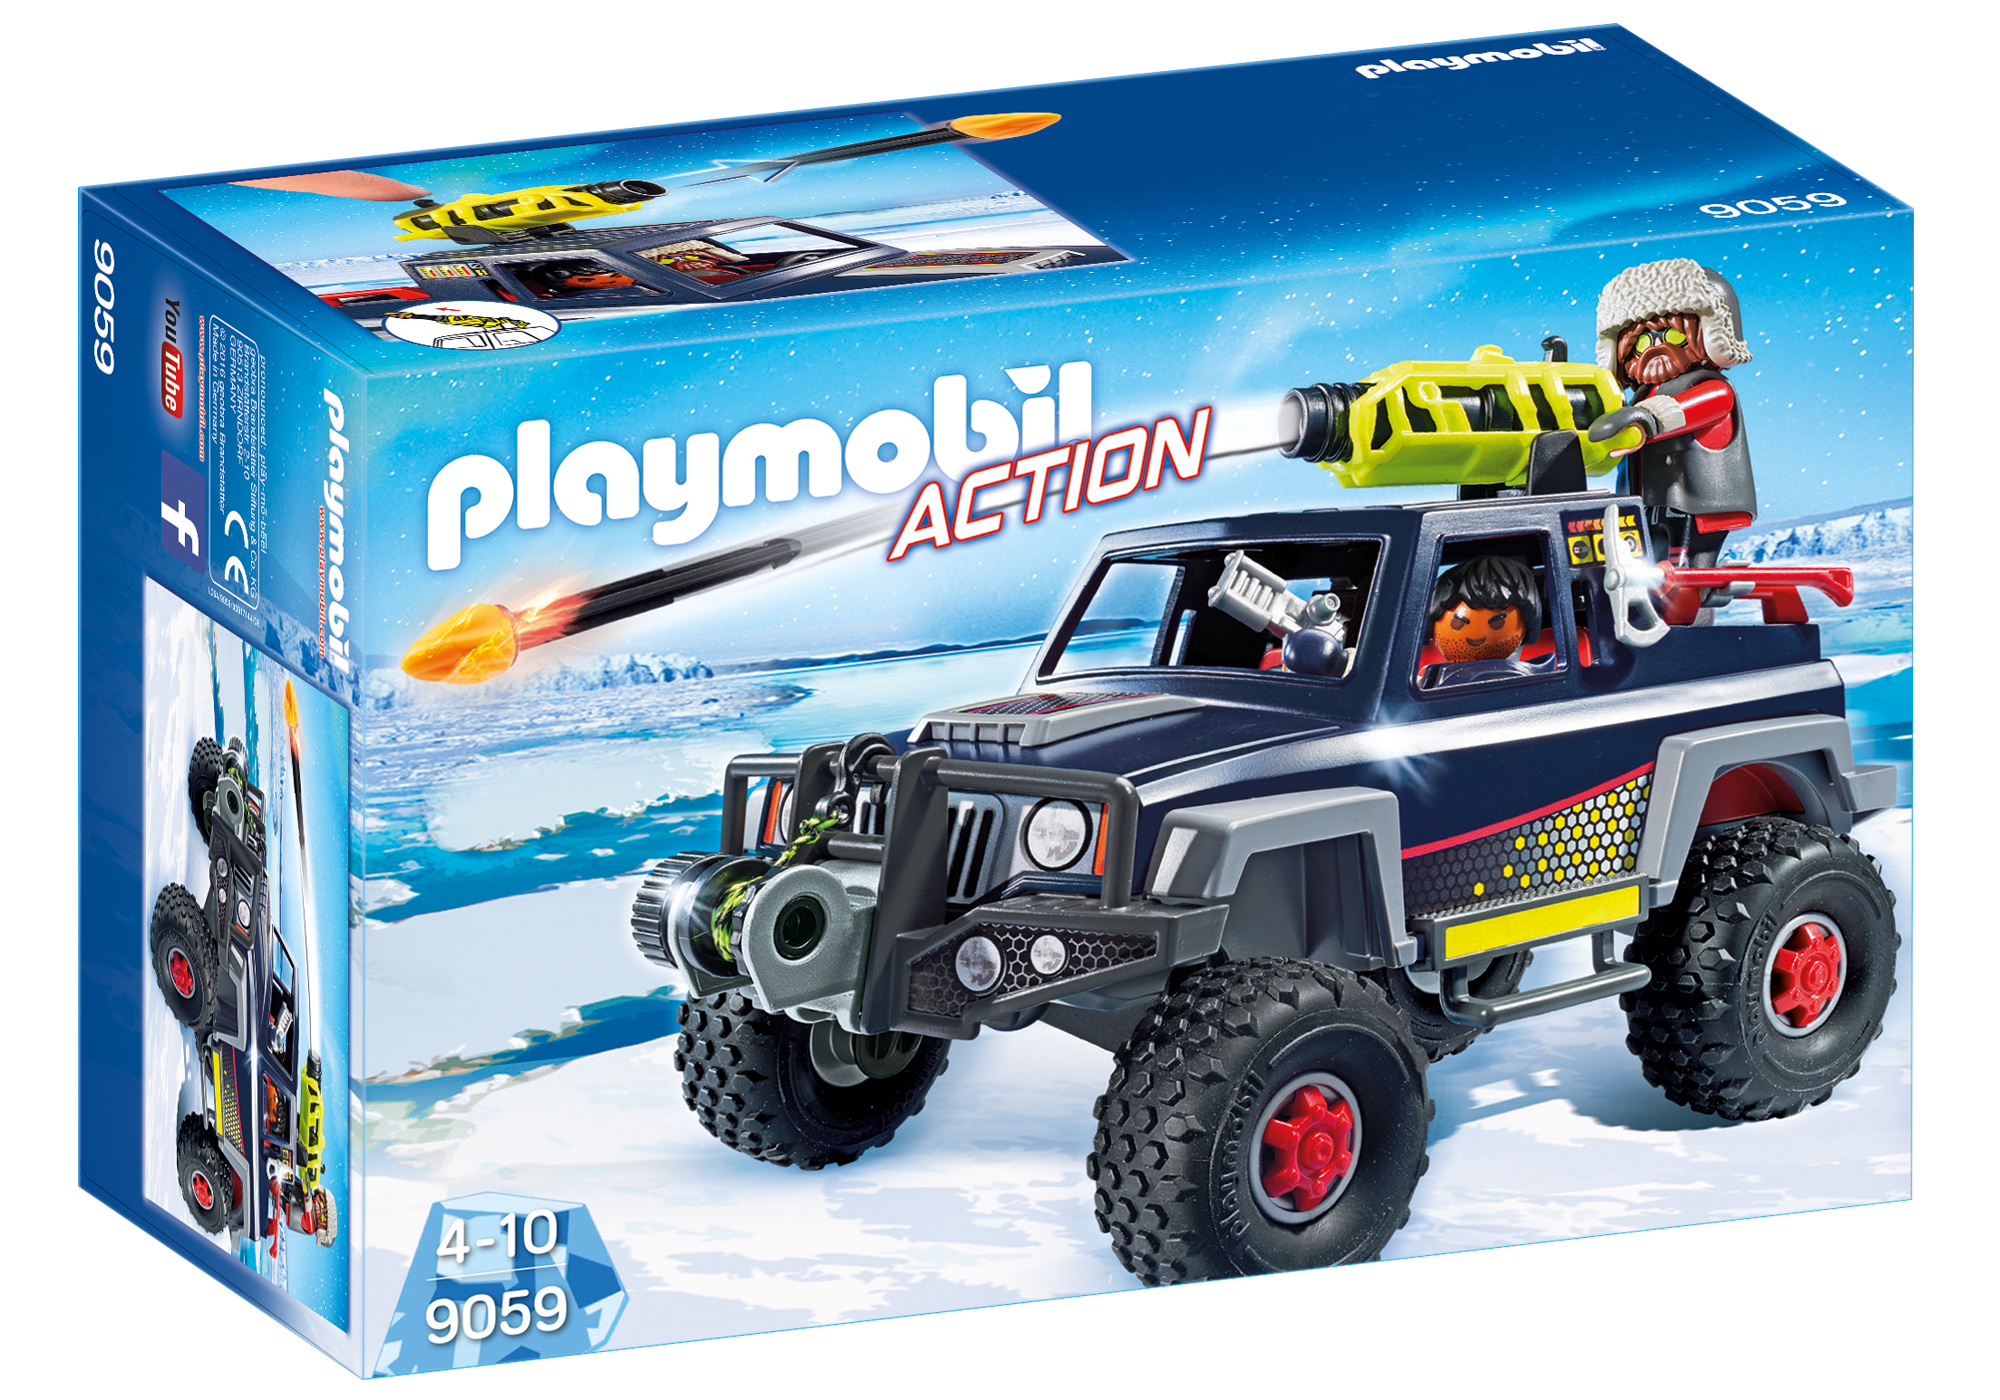 http://media.playmobil.com/i/playmobil/9059_product_box_front/Ice Pirates with Snow Truck